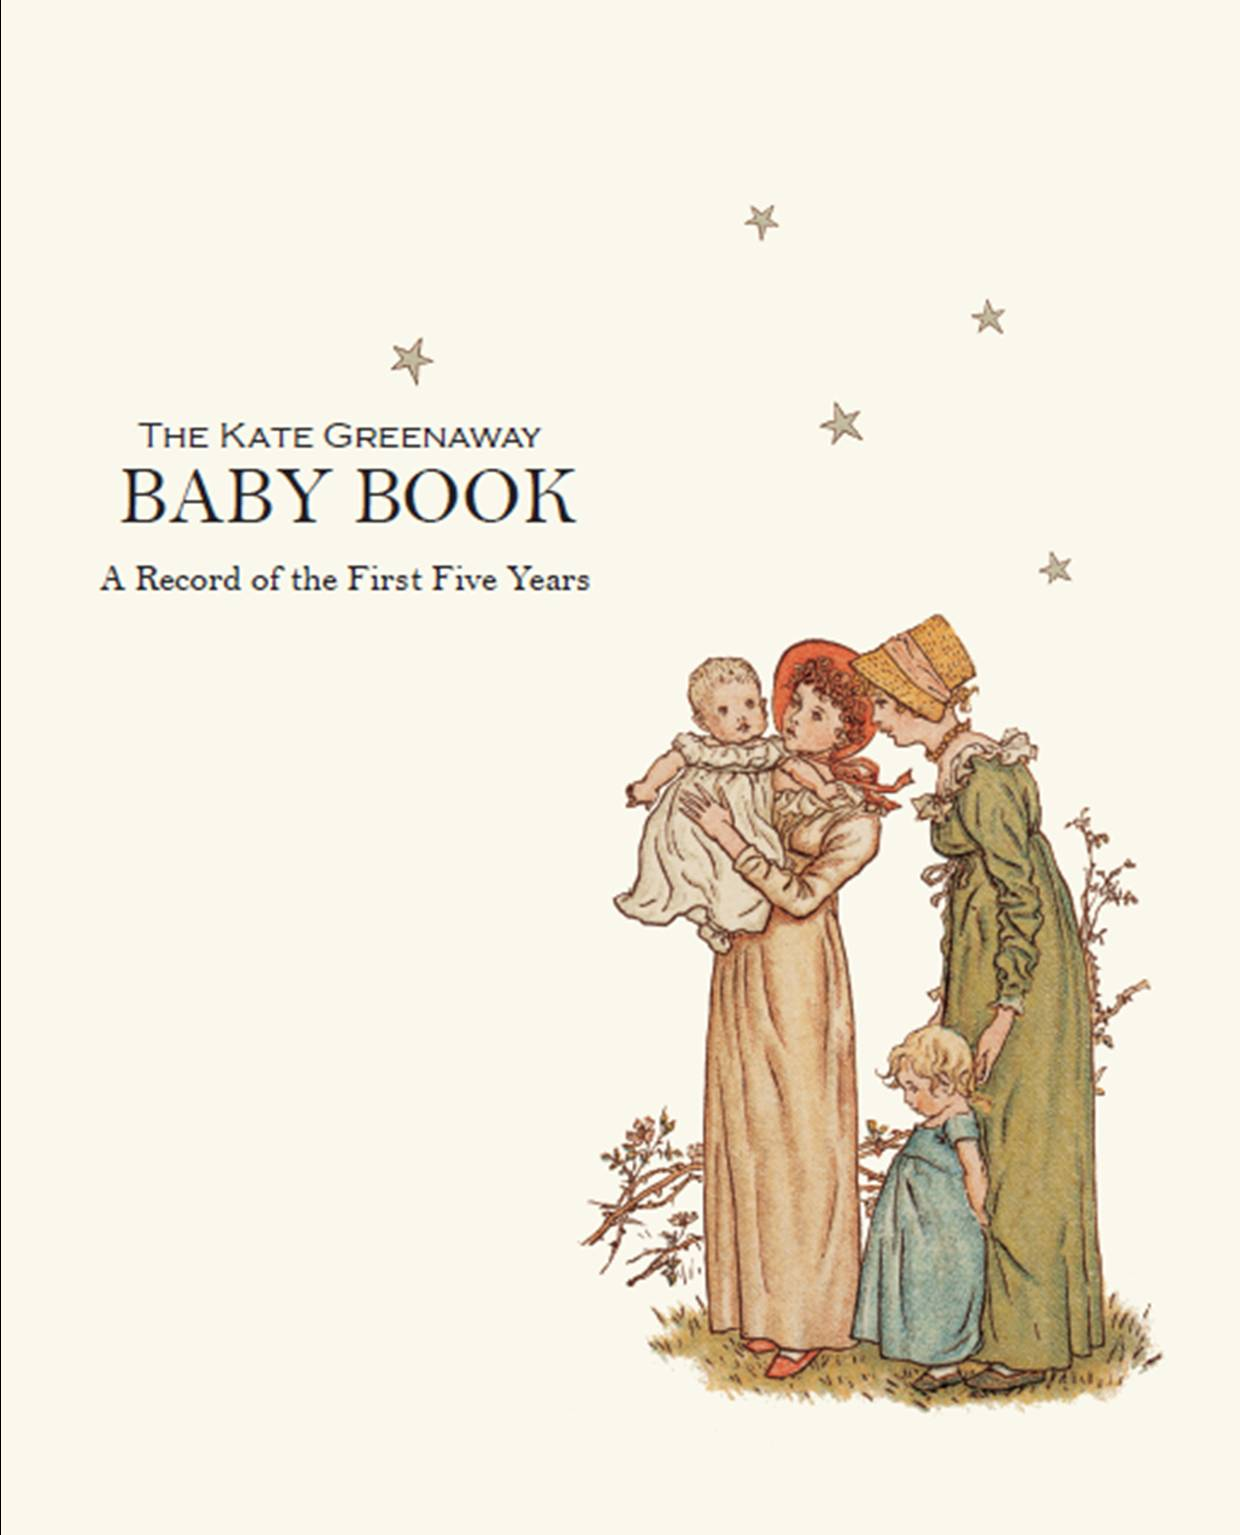 The Kate Greenaway Baby Book: First Five Years - Sheldrake Press